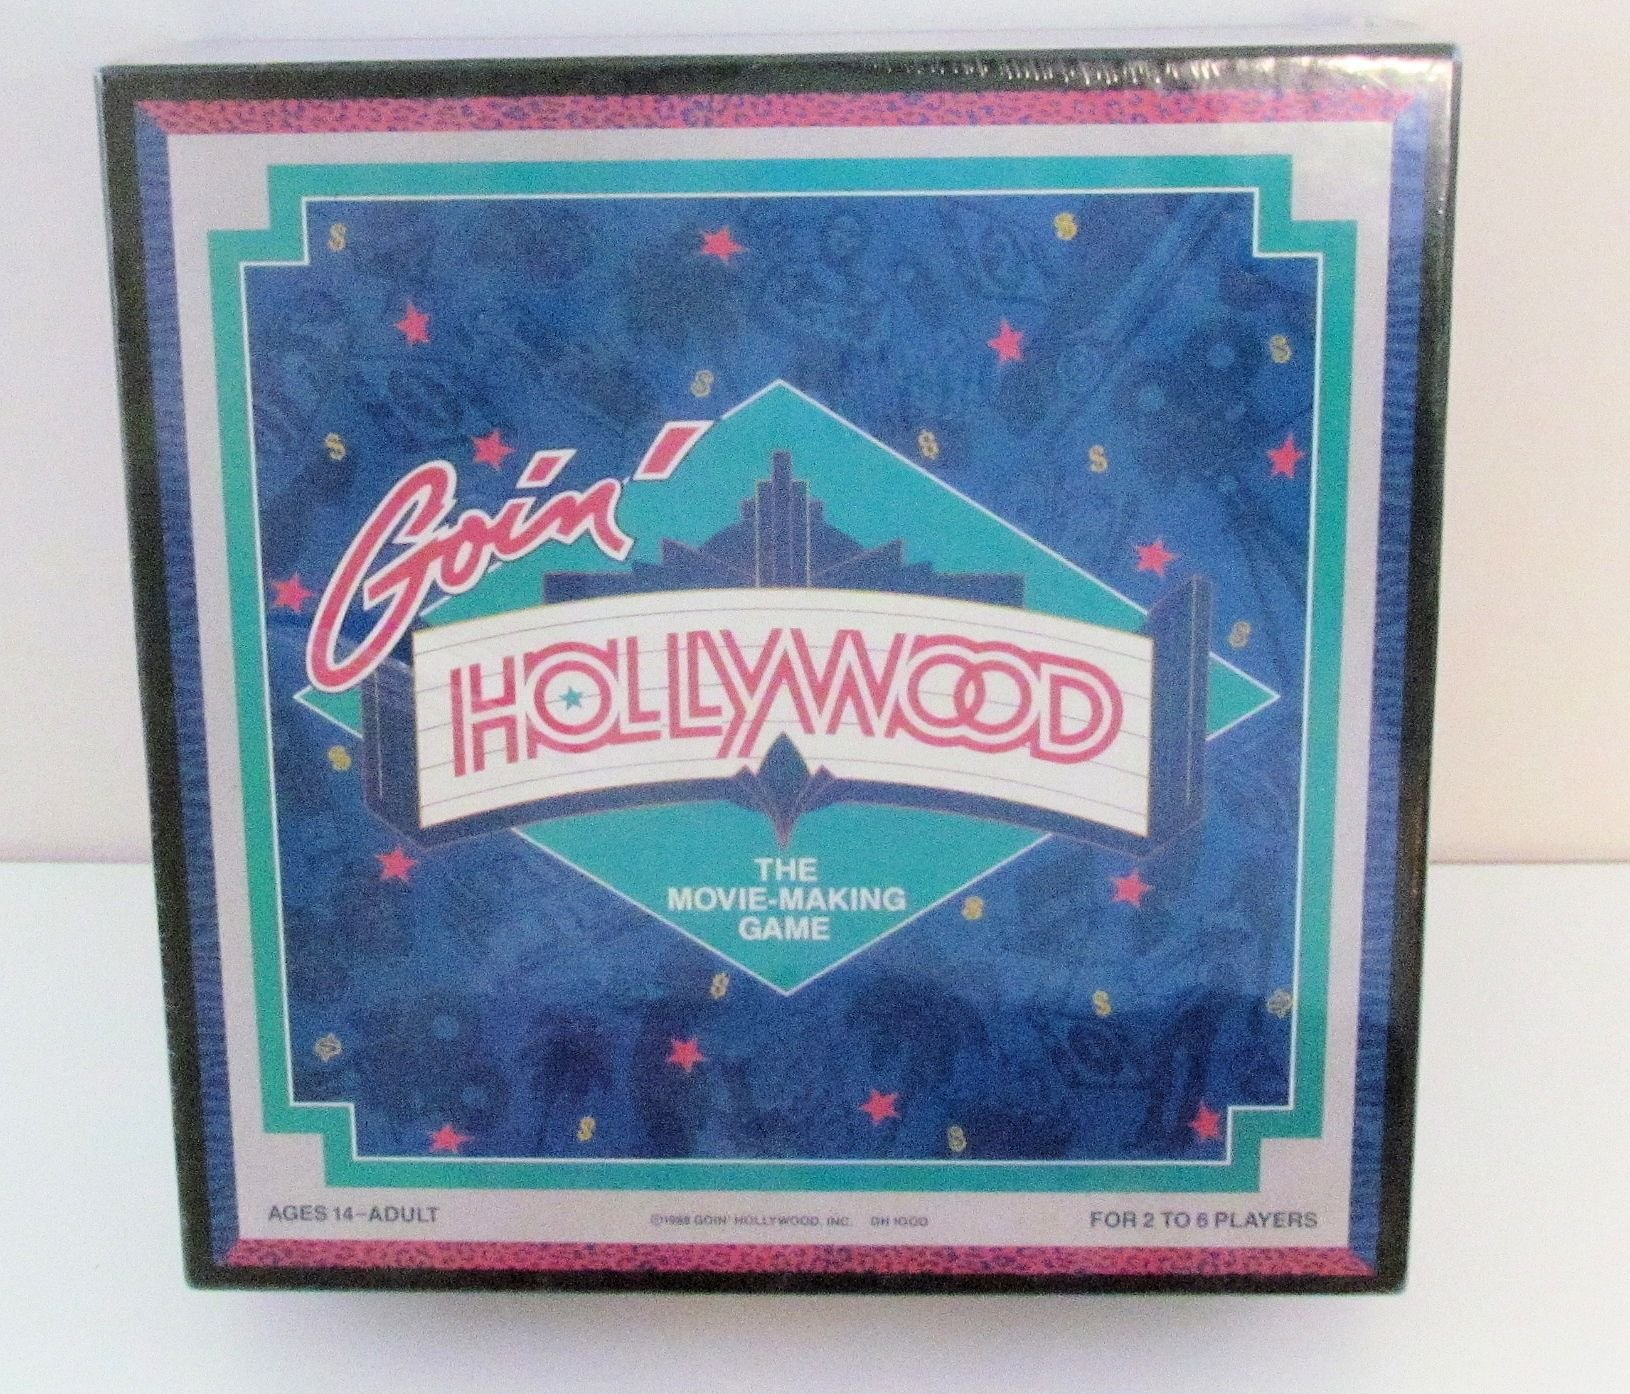 Goin' Hollywood The Movie-Making Game